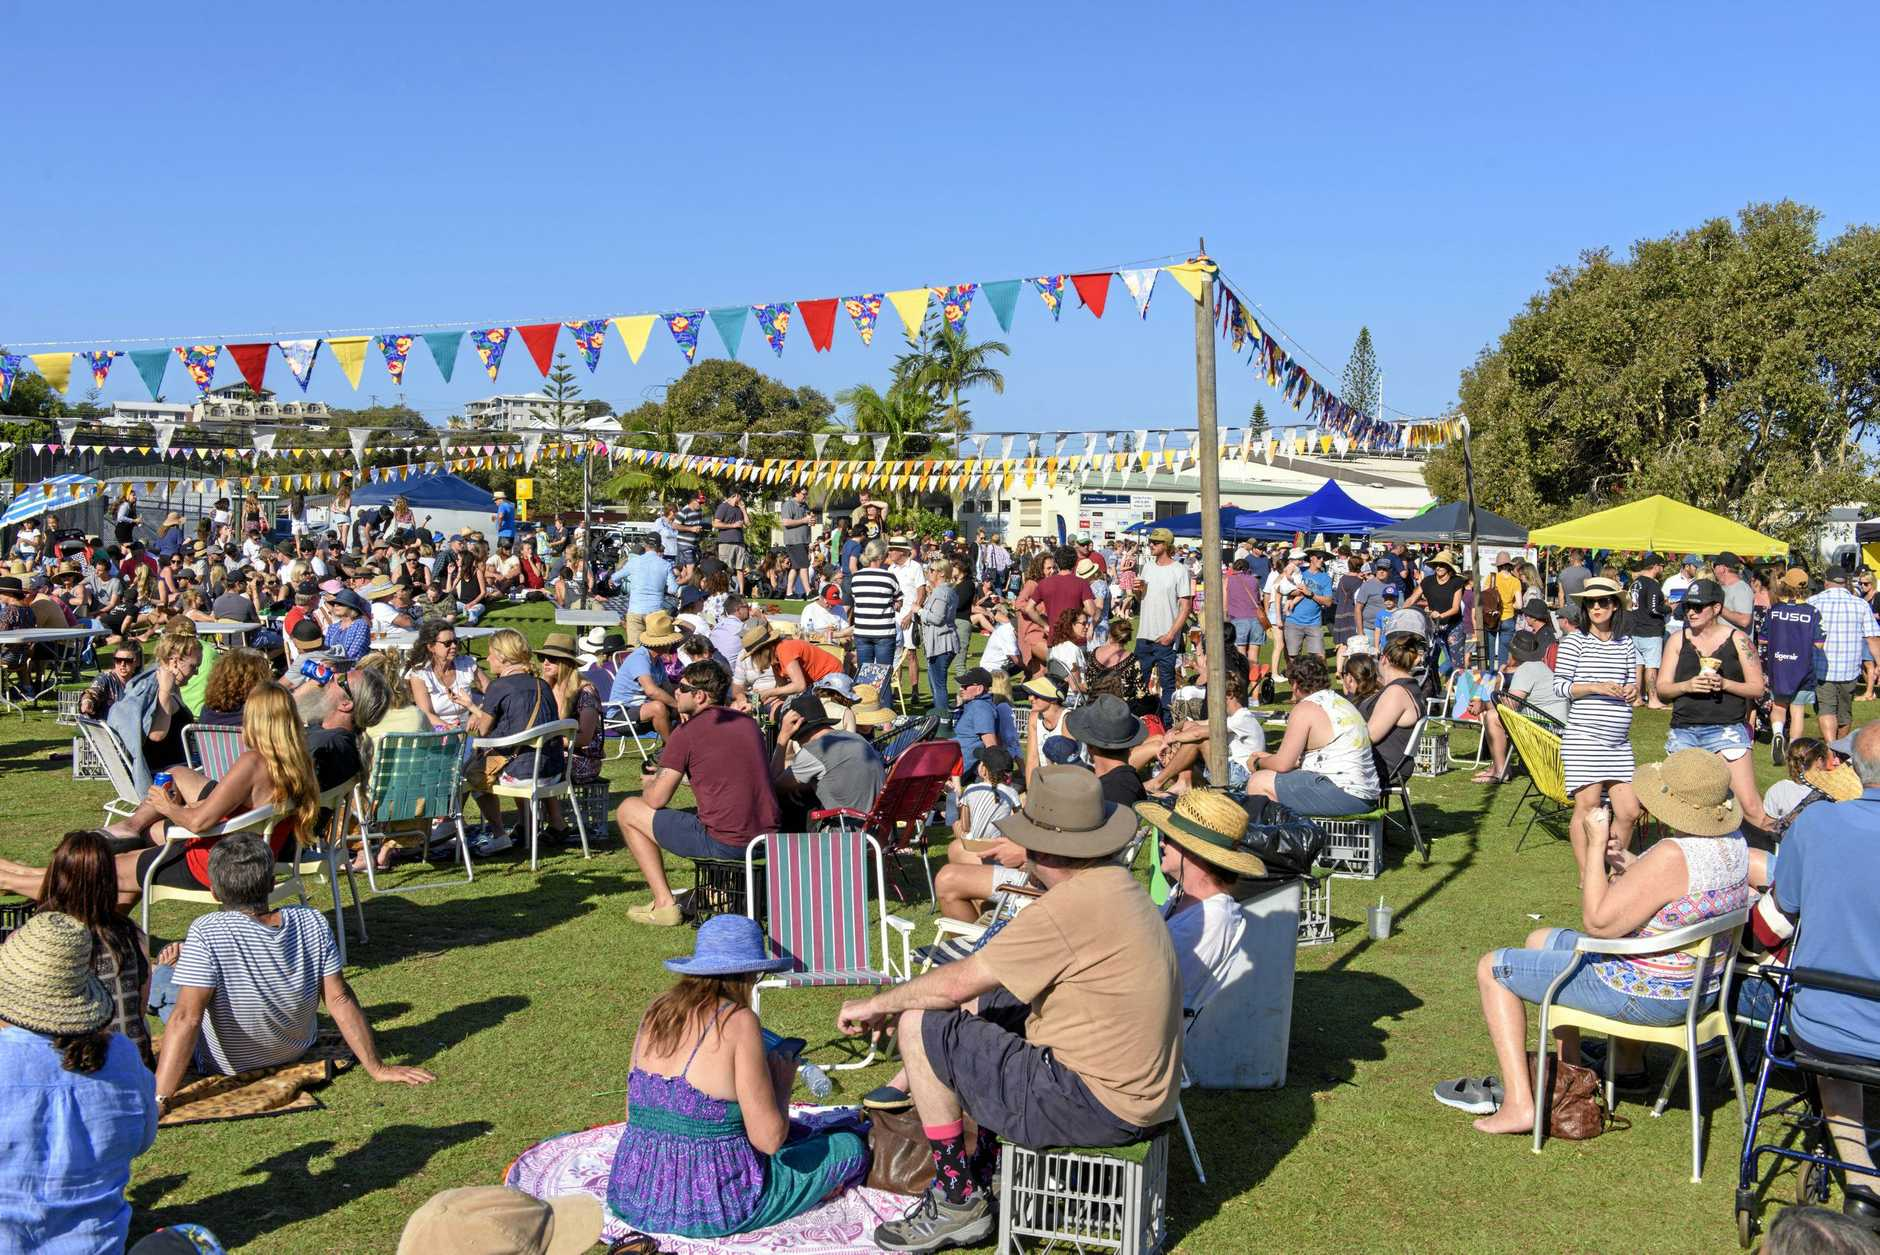 The crowd at the Yamba Gourmet Street Food Truck Festival at the Yamba Golf Club.